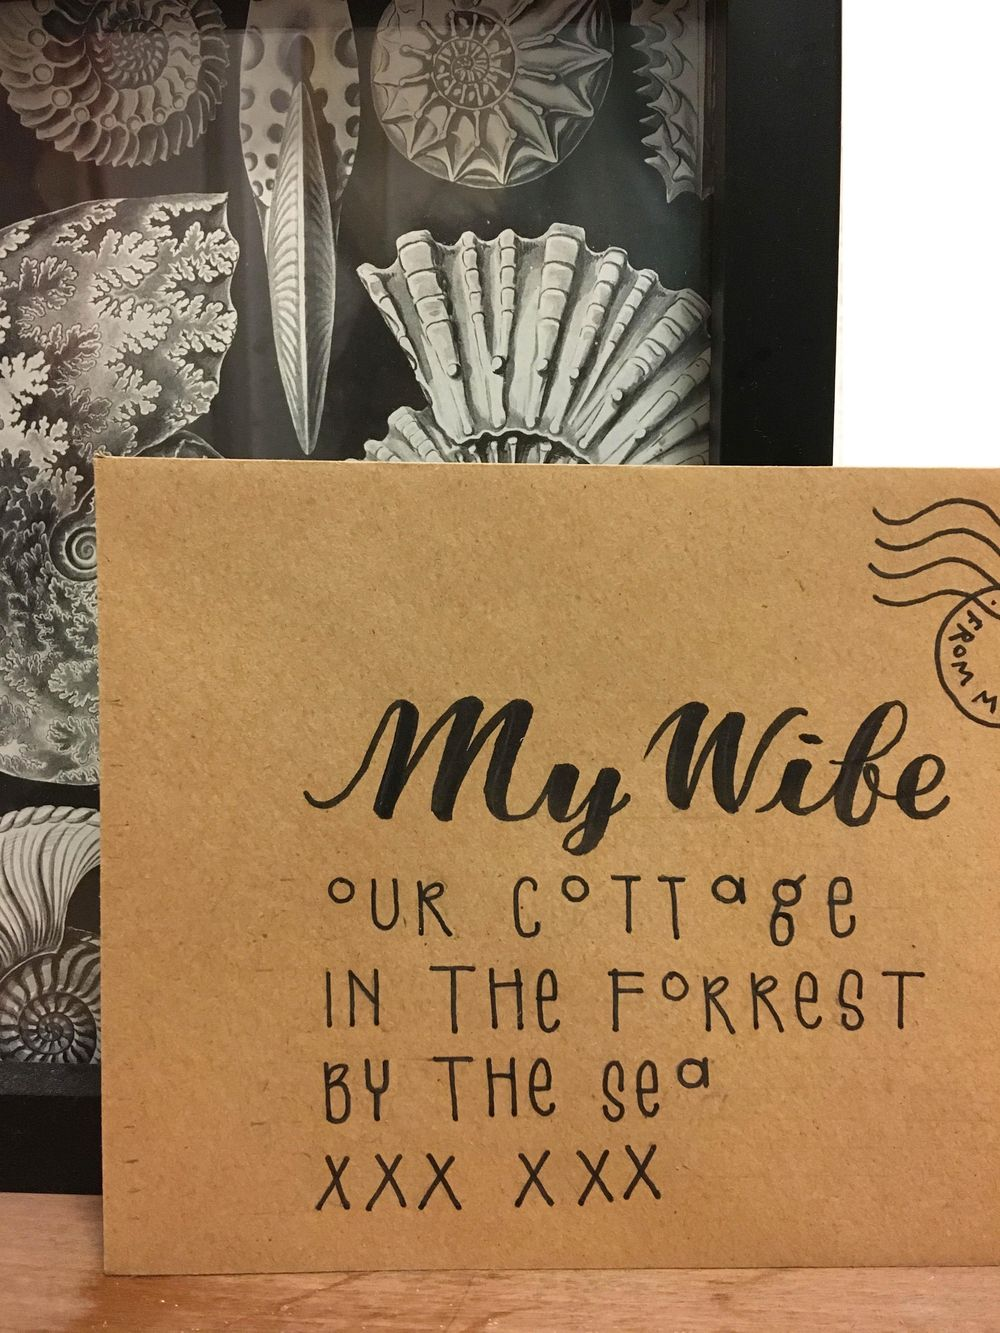 Letter to my Wife - image 1 - student project